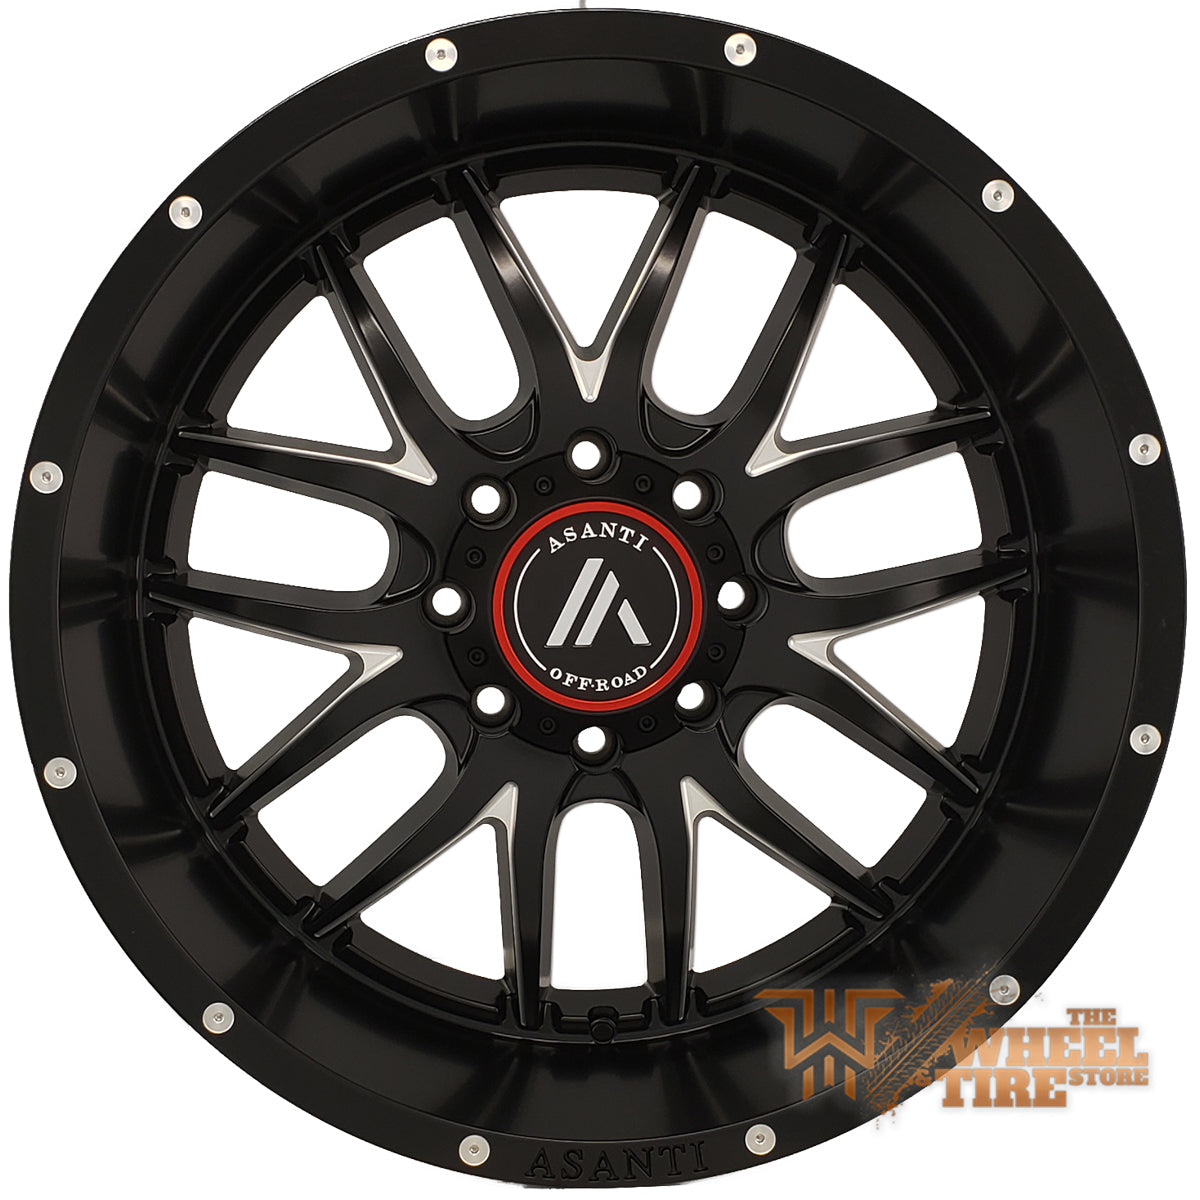 ASANTI OFF-ROAD AB807 'Carbine' Wheel in Satin Black Milled (Set of 4)